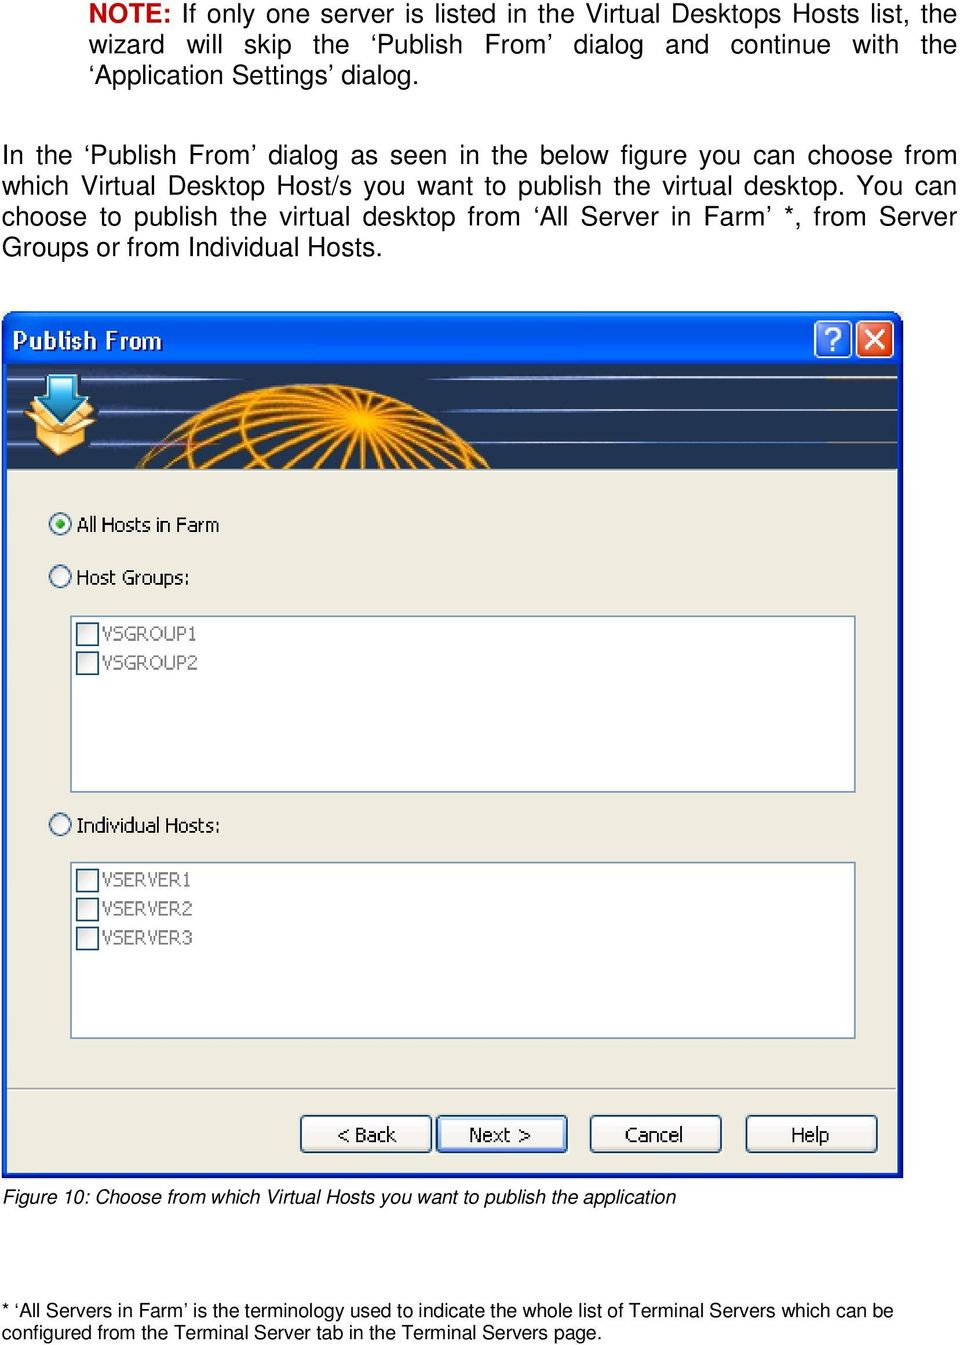 You can choose to publish the virtual desktop from All Server in Farm *, from Server Groups or from Individual Hosts.